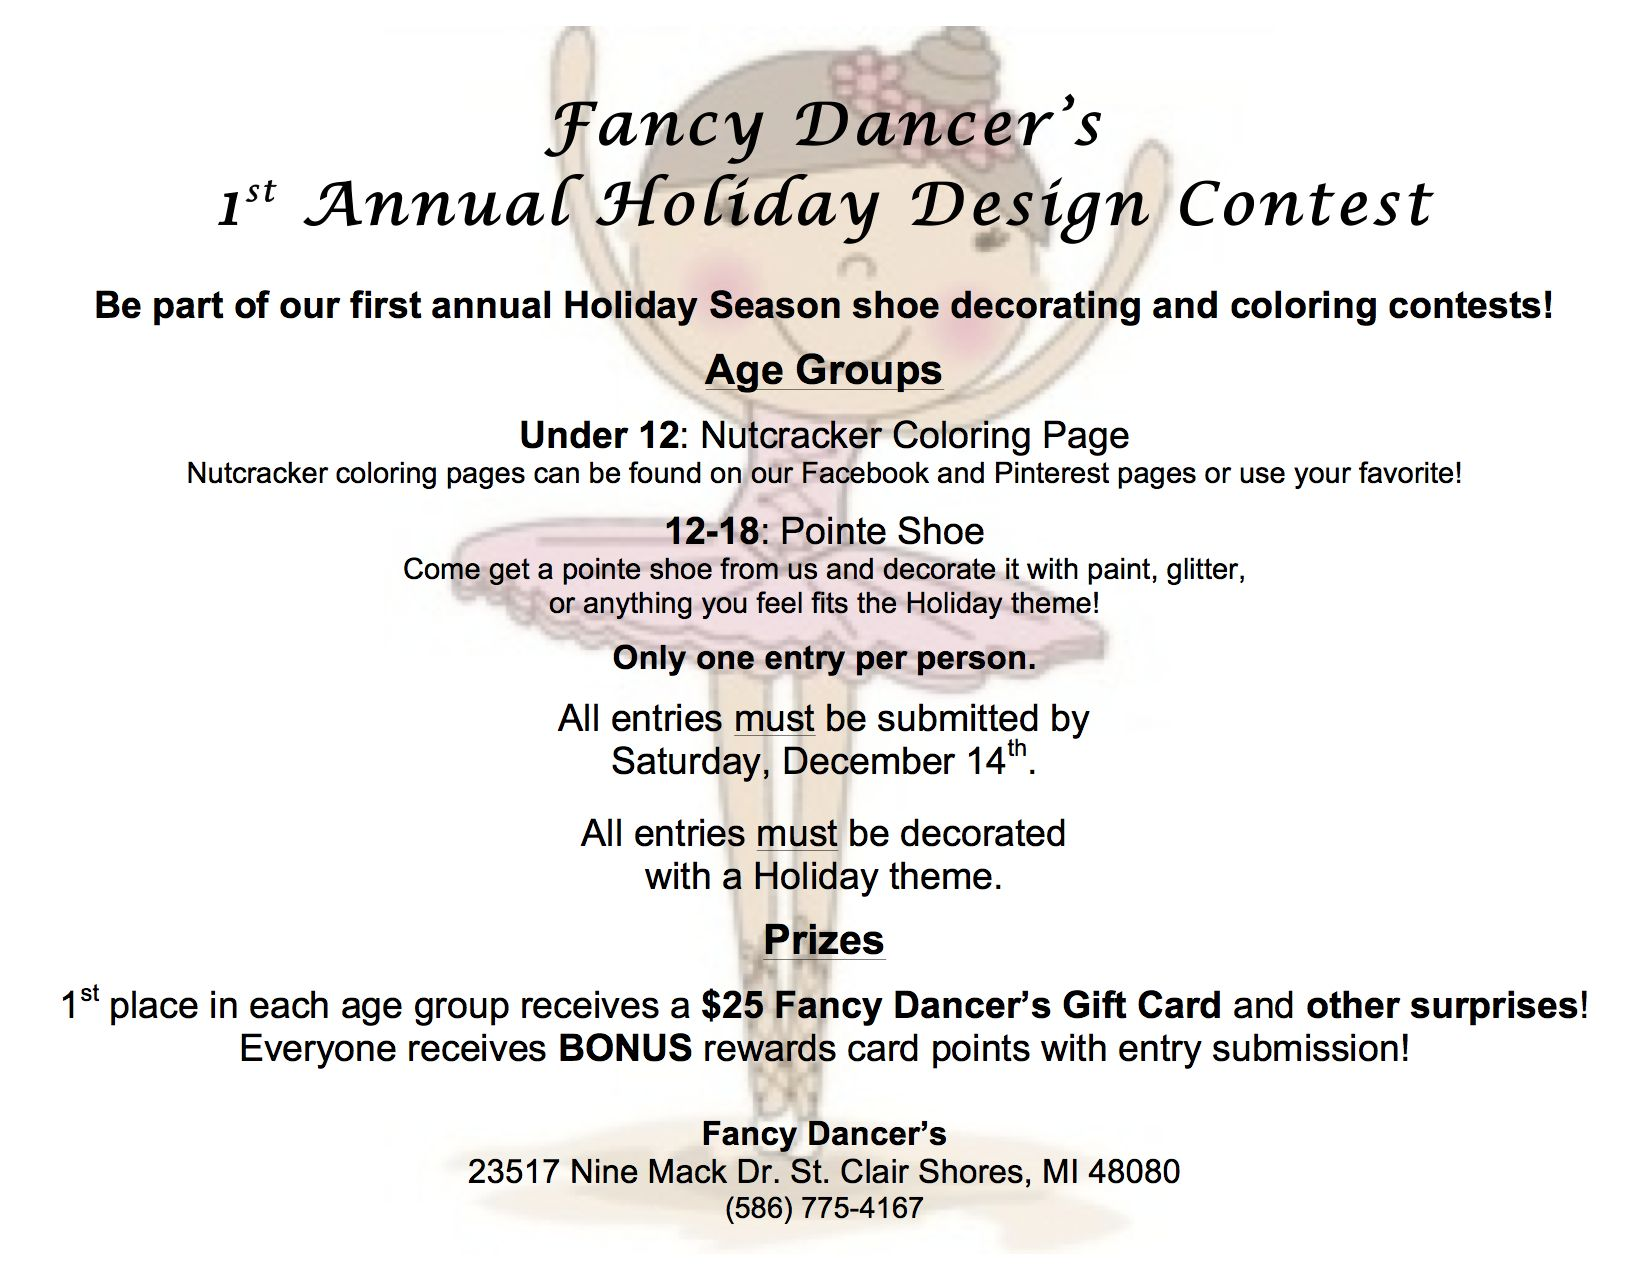 1st Annual Holiday Pointe Shoe Decorating And Coloring